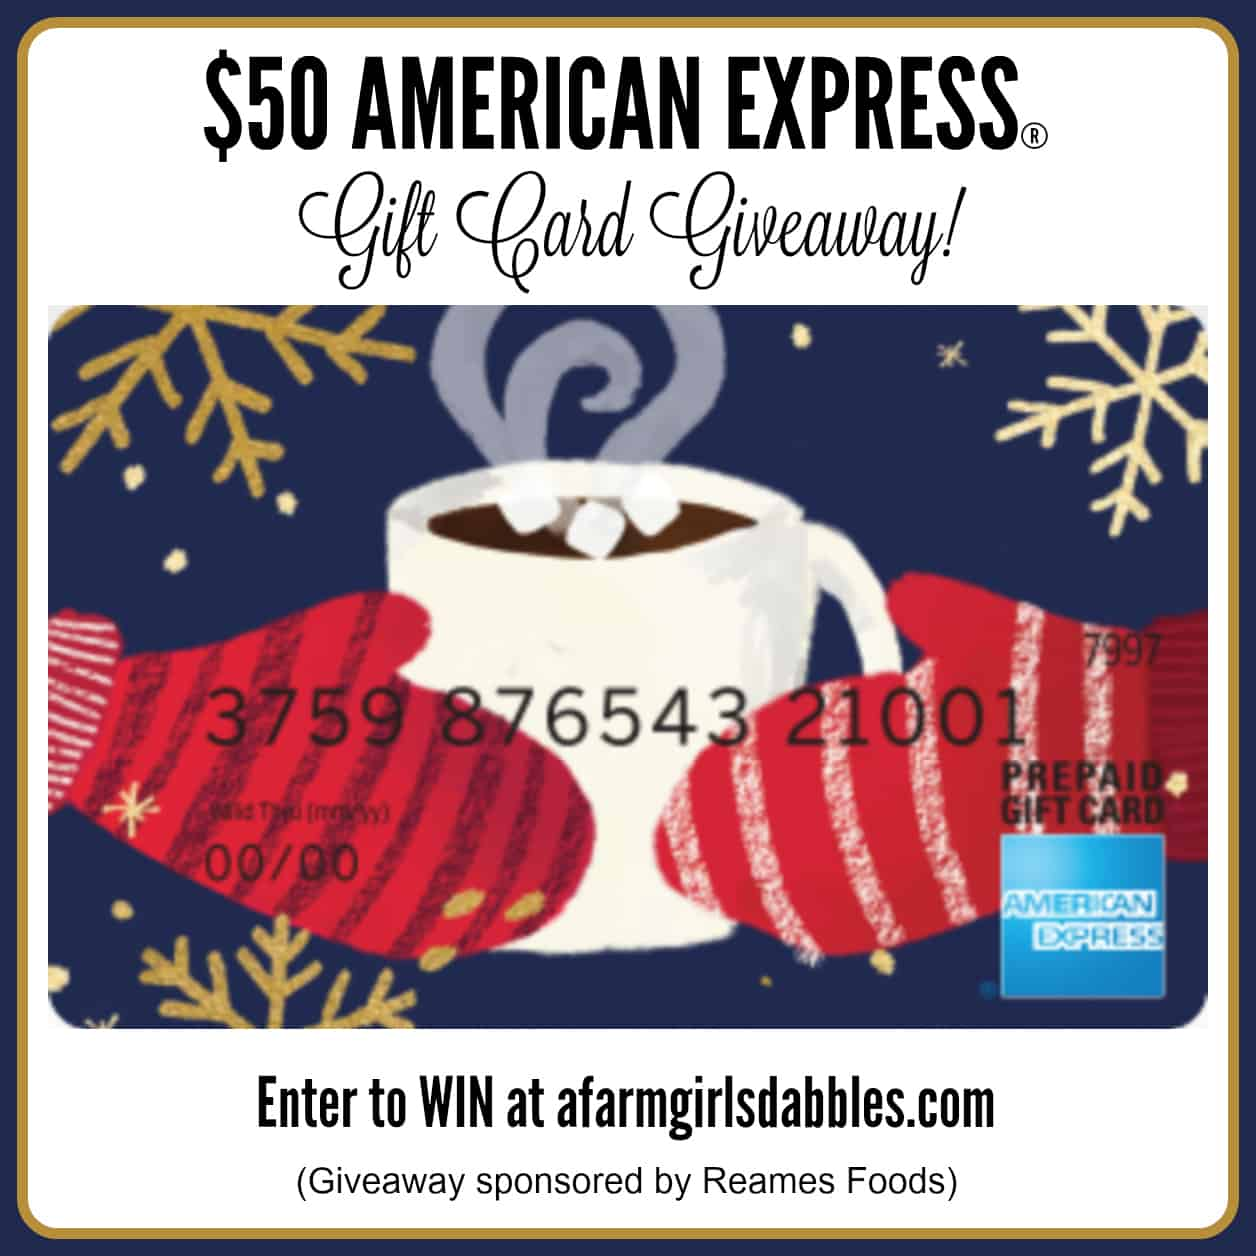 $50 American Express Gift Card Giveaway - enter at afarmgirlsdabbles.com - sponsored by Reames Foods